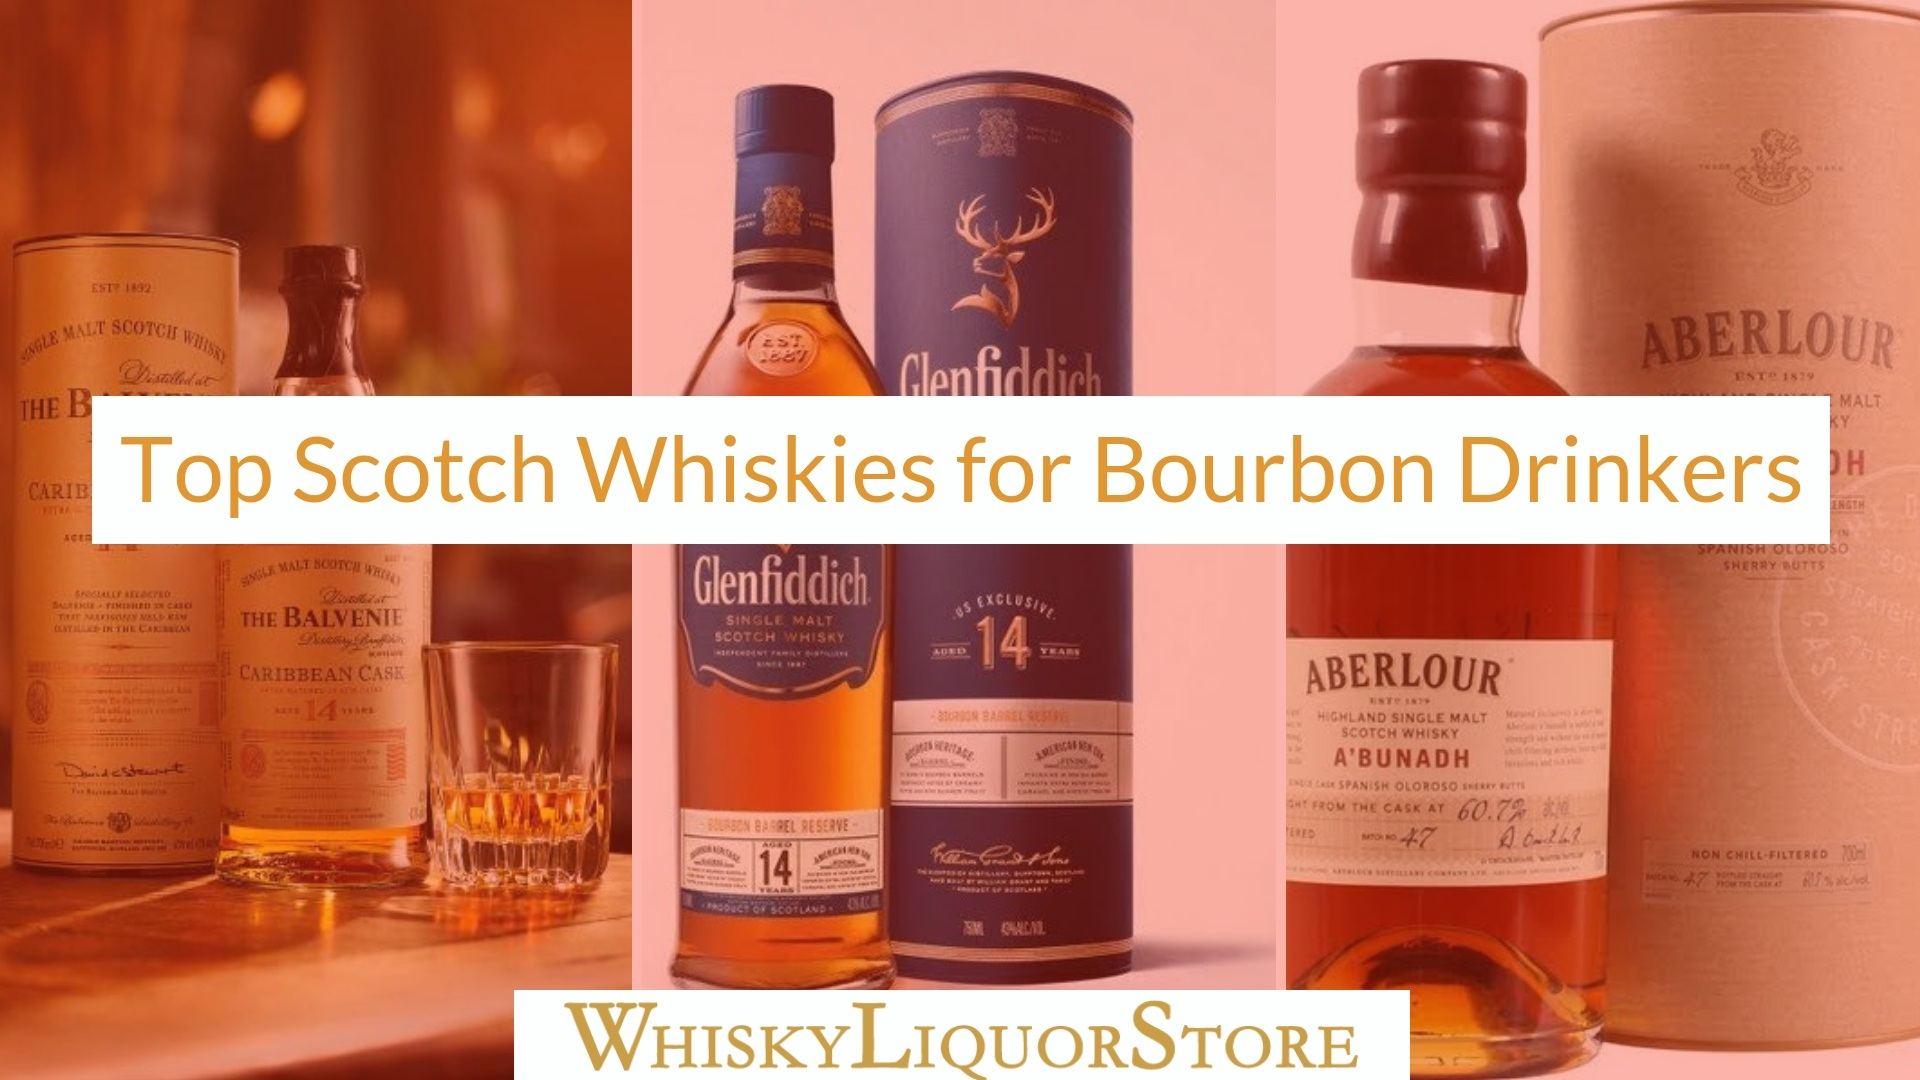 Top Scotch Whiskies for Bourbon Drinkers